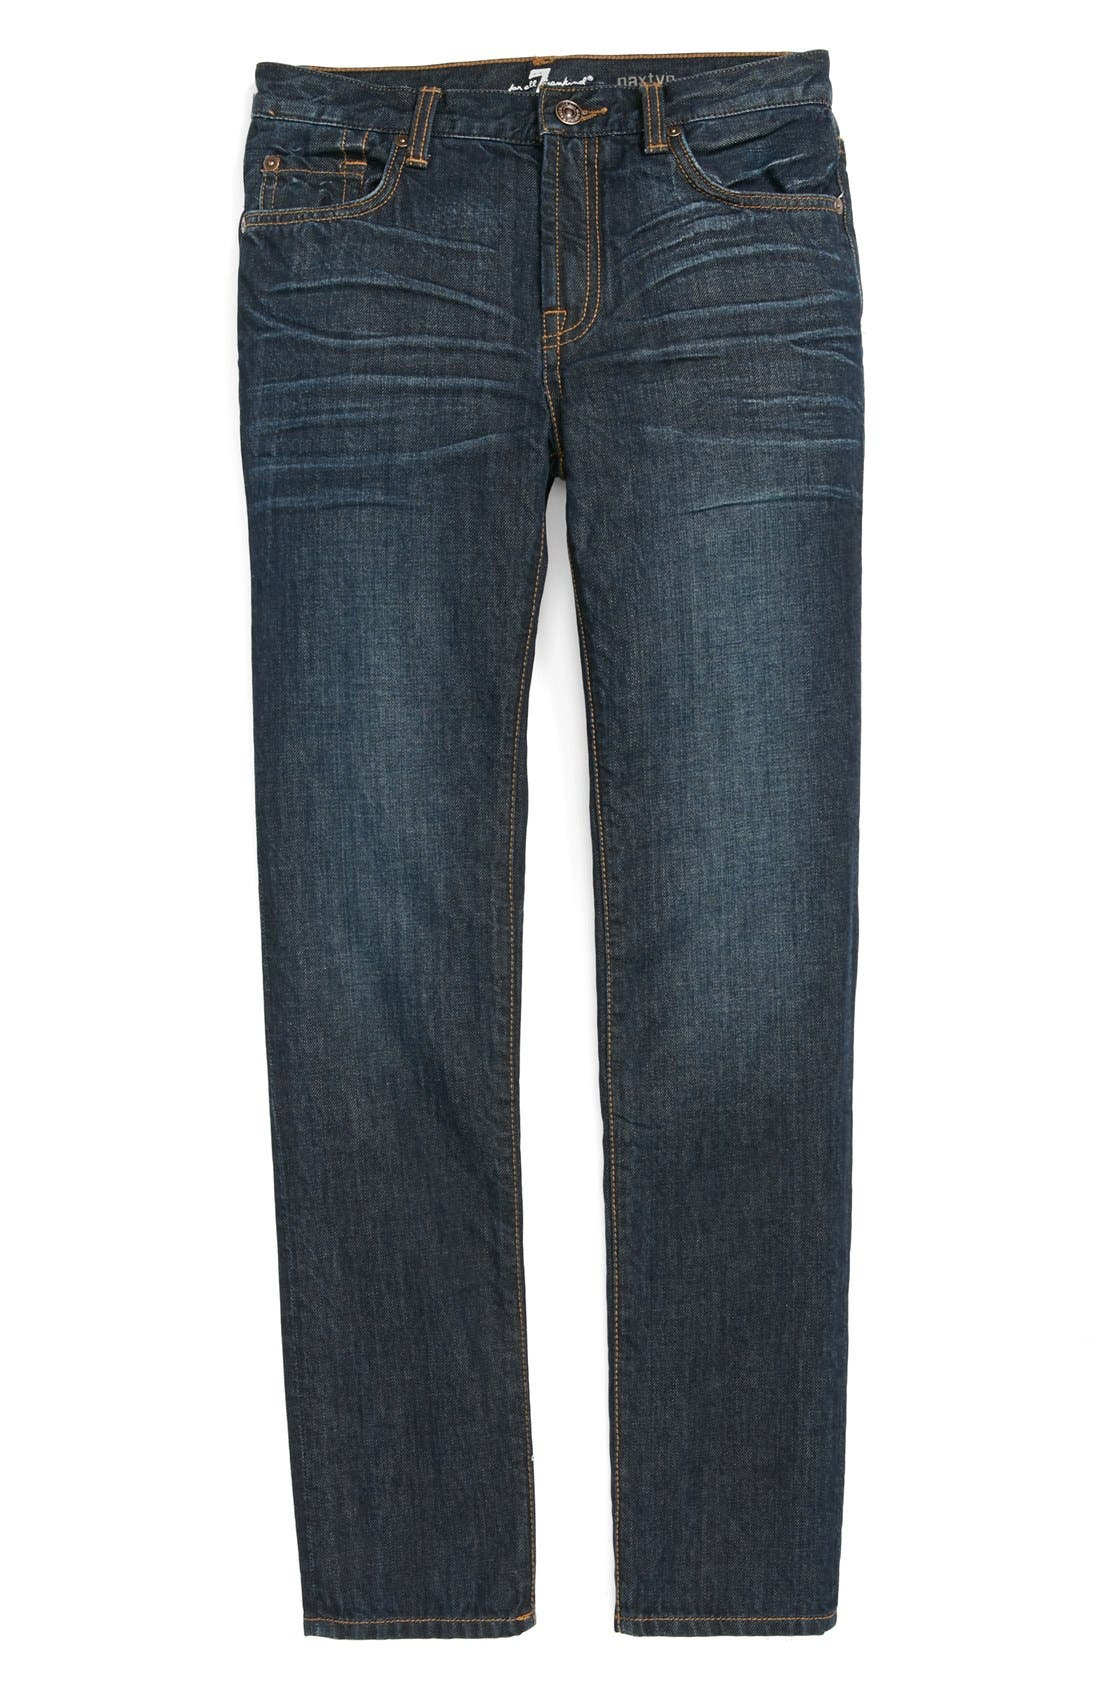 7 FOR ALL MANKIND<SUP>®</SUP>,                             'Paxtyn' Skinny Jeans,                             Alternate thumbnail 2, color,                             425